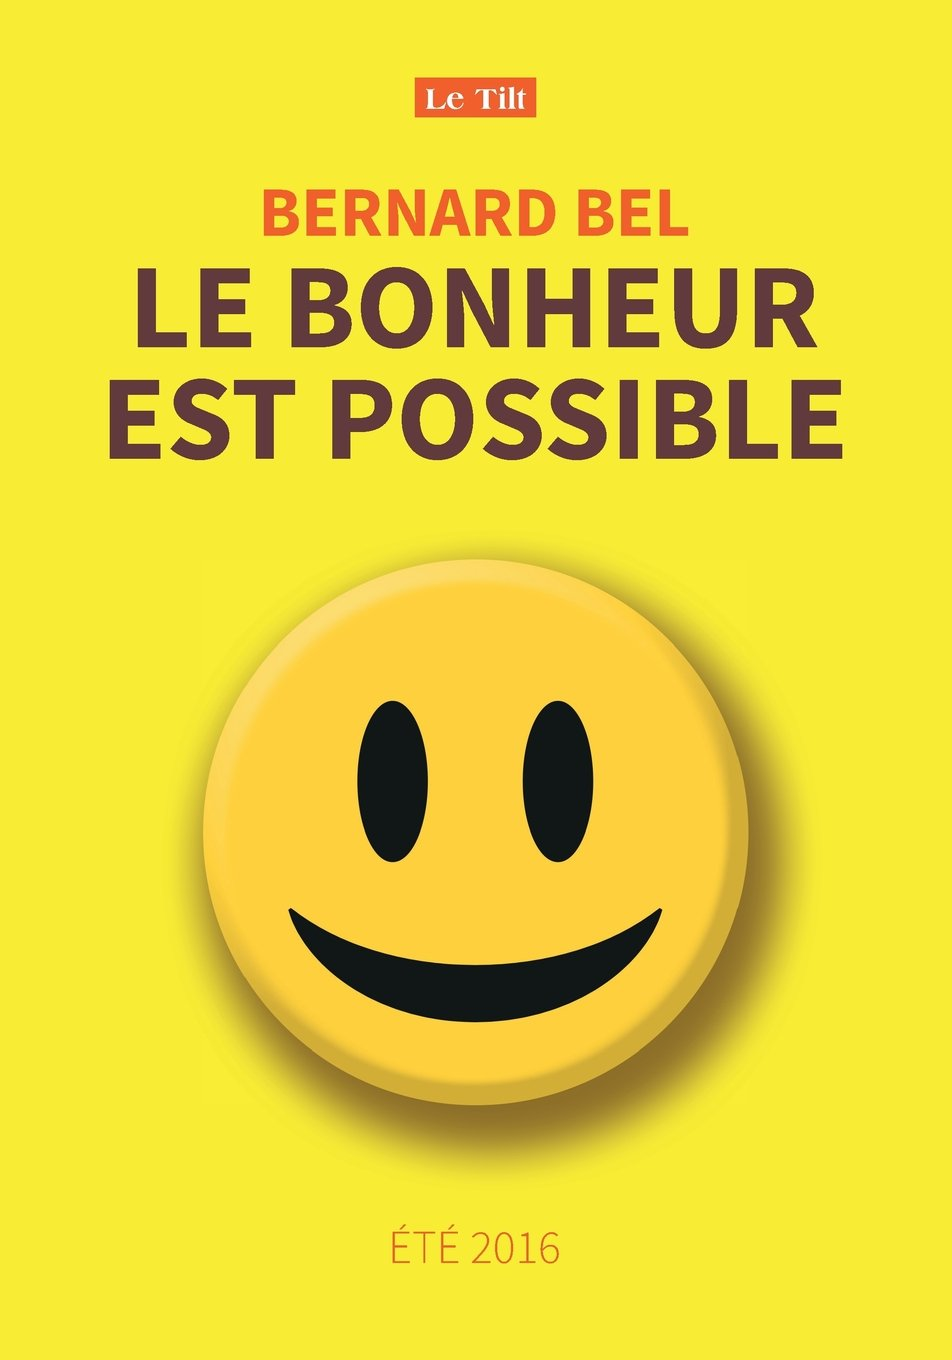 Le Bonheur Est Possible: Été 2016 (French Edition): Bernard Bel: 9782955134849: Amazon.com: Books